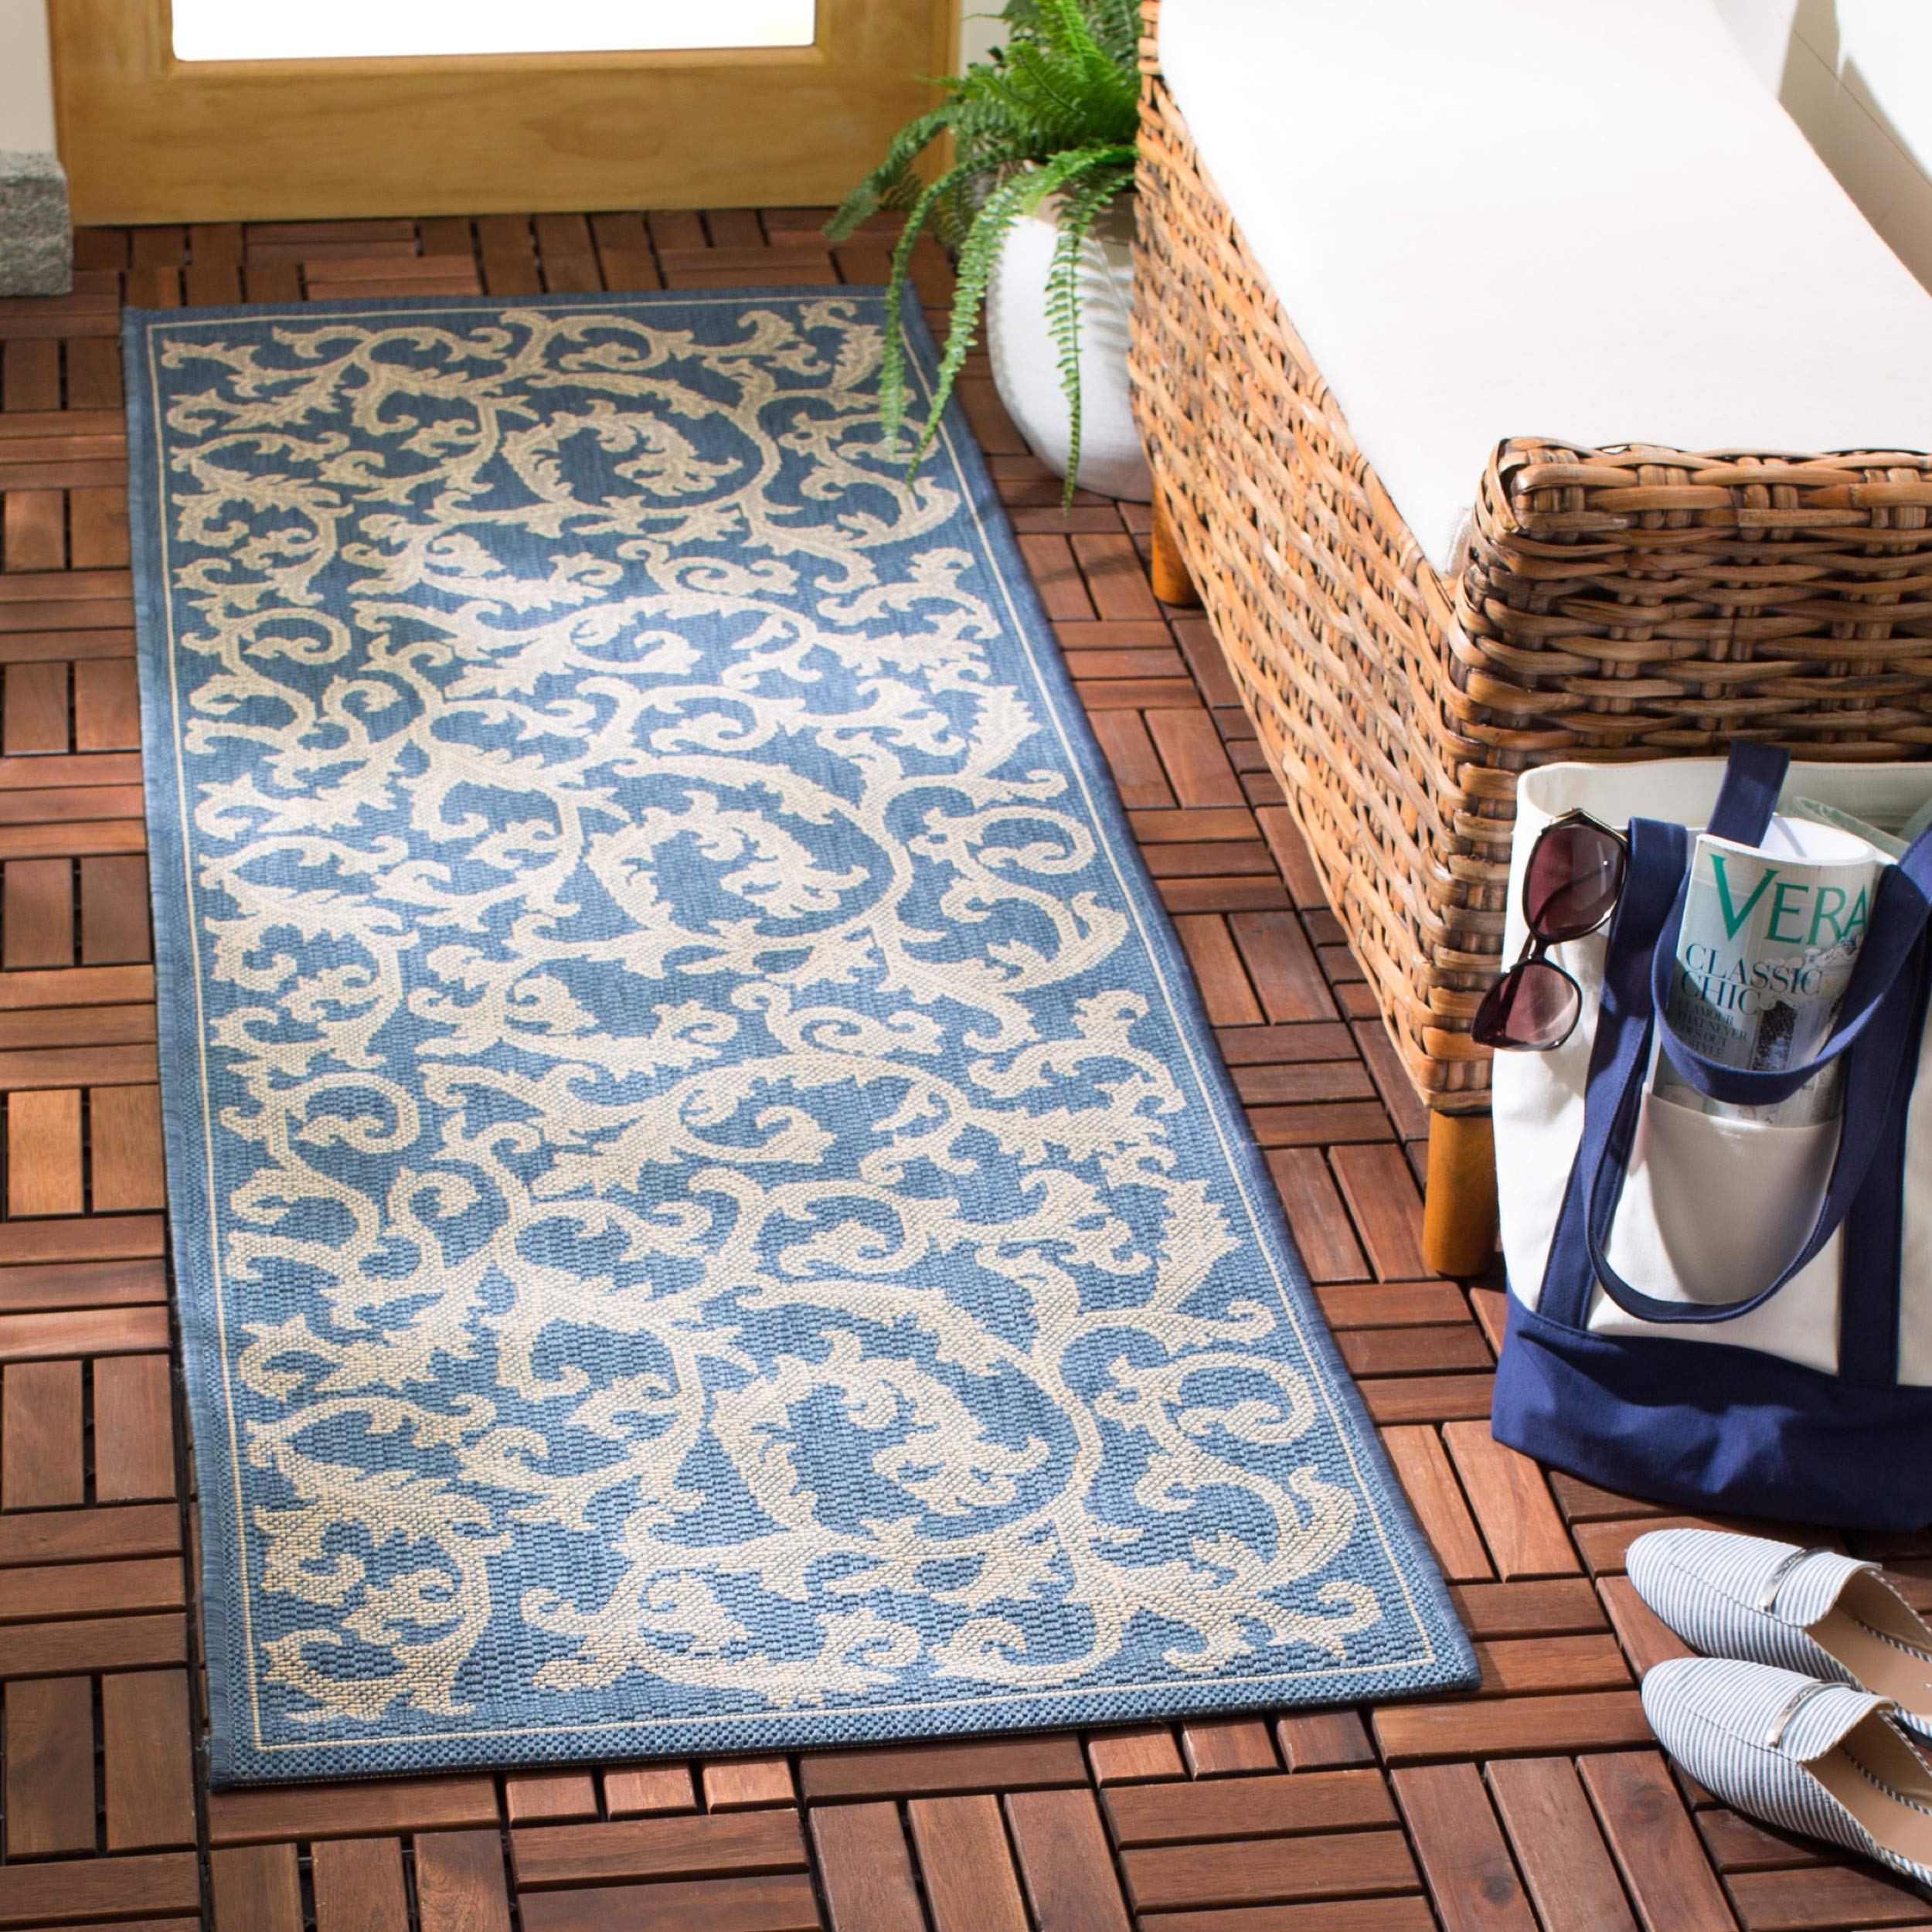 Safavieh Courtyard Collection CY2653-3103 Blue and Natural Indoor/Outdoor Area Runner Rug, 2-Feet 4-Inch by 6-Feet 7-Inch